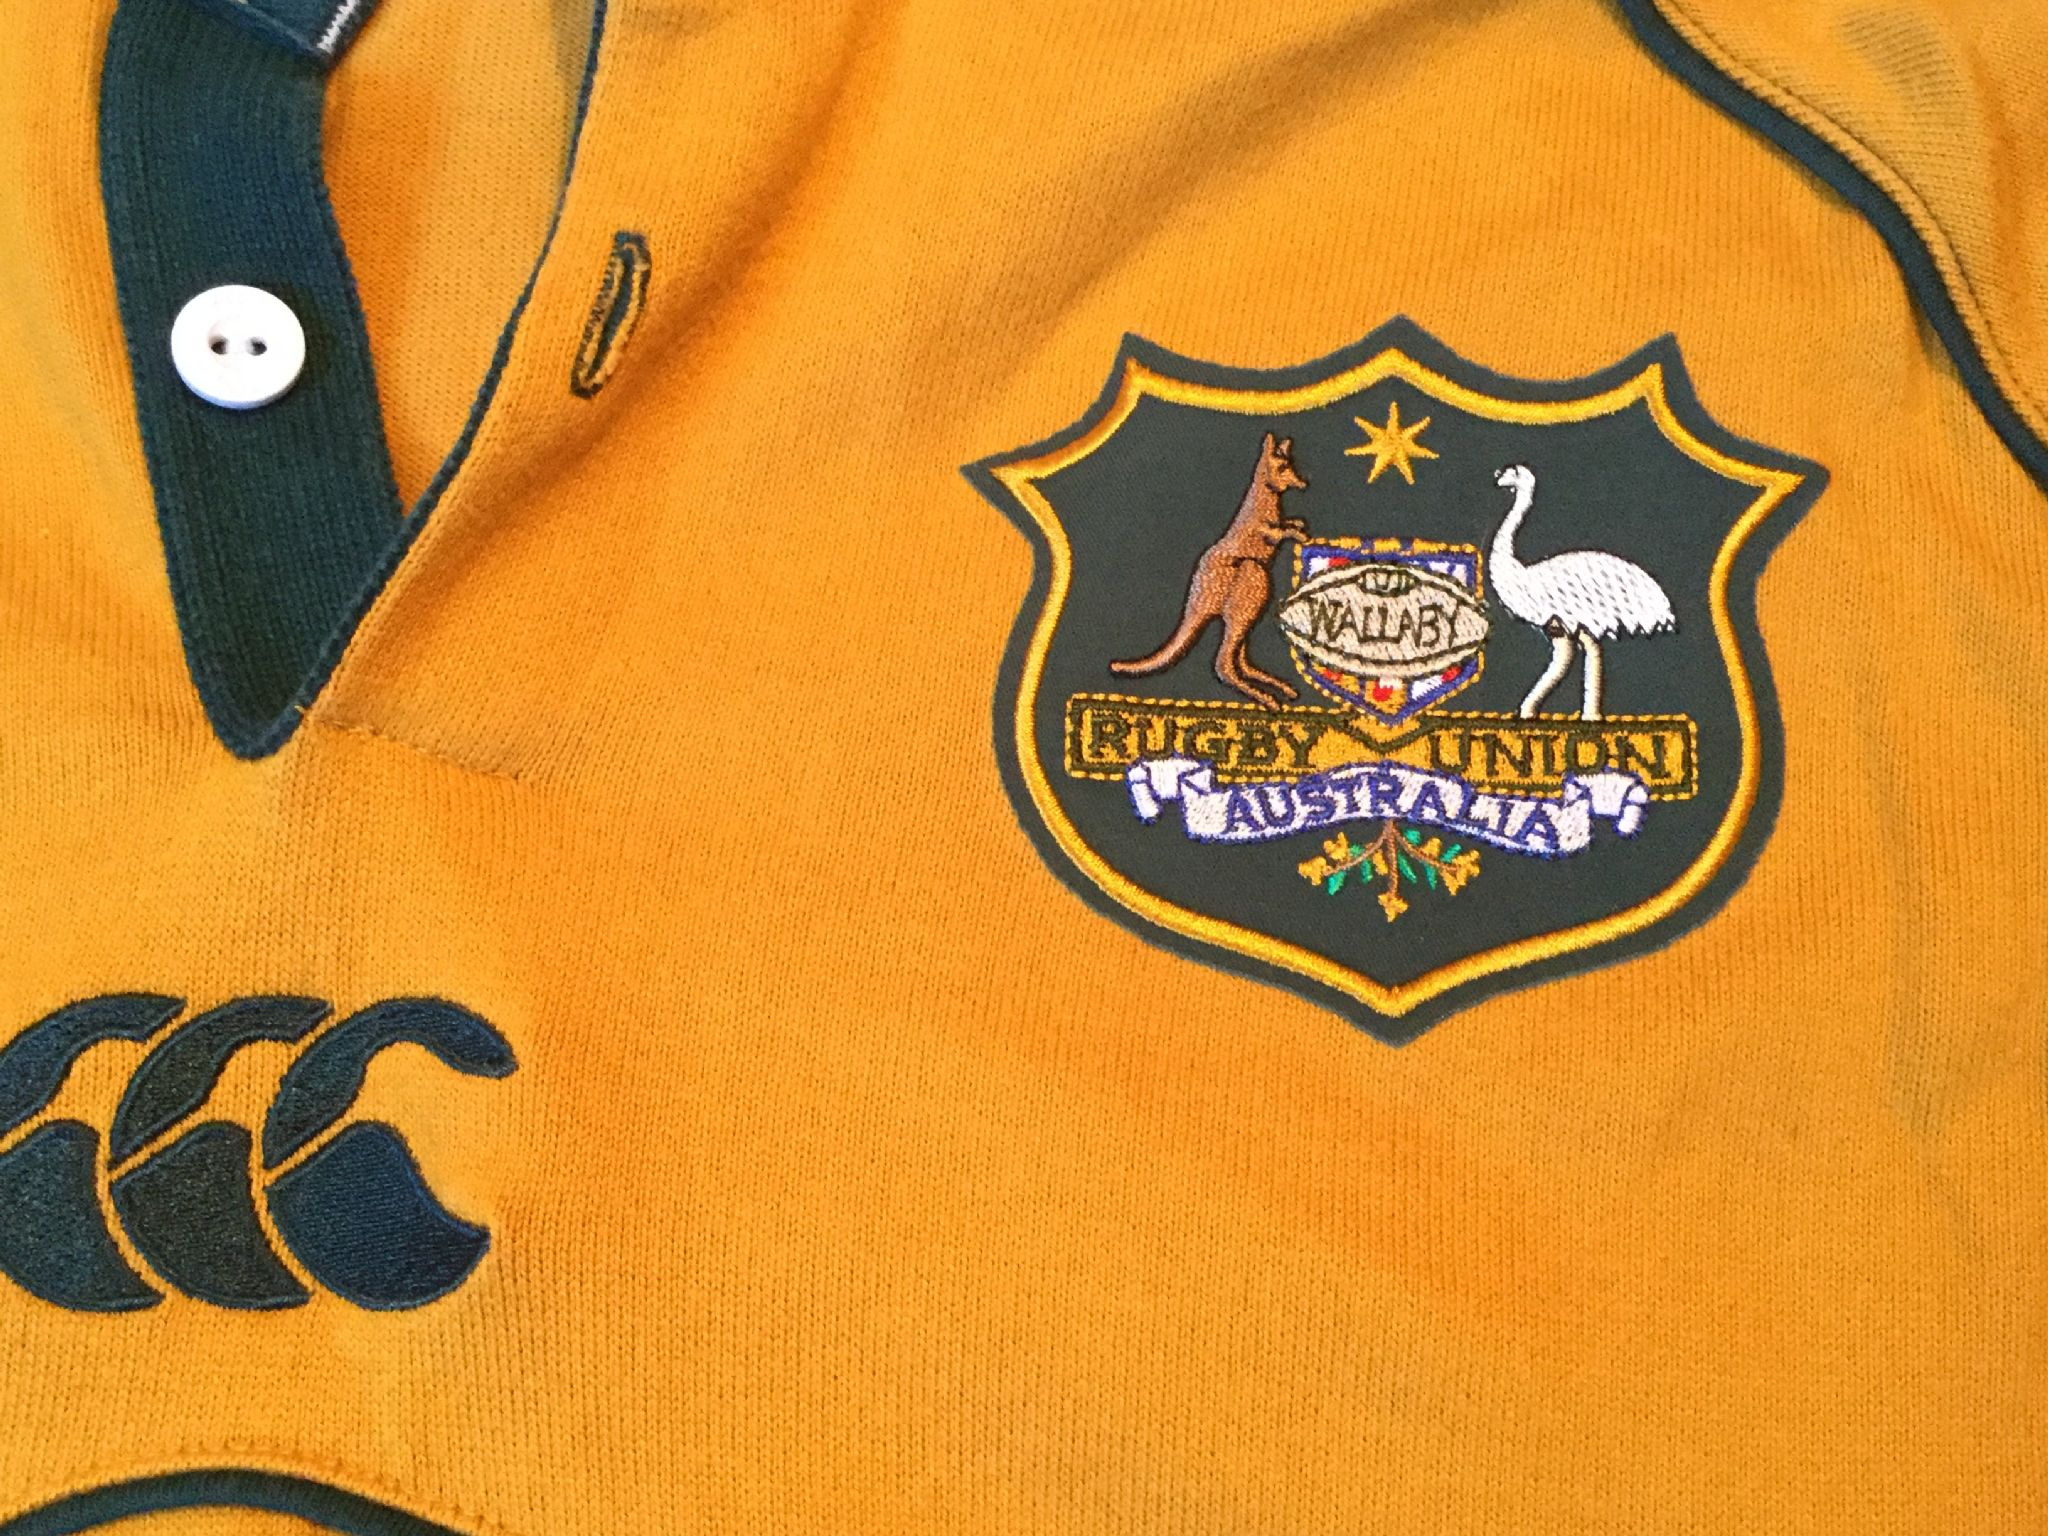 Classic Rugby Shirts 2006 Australia Old Vintage Retro